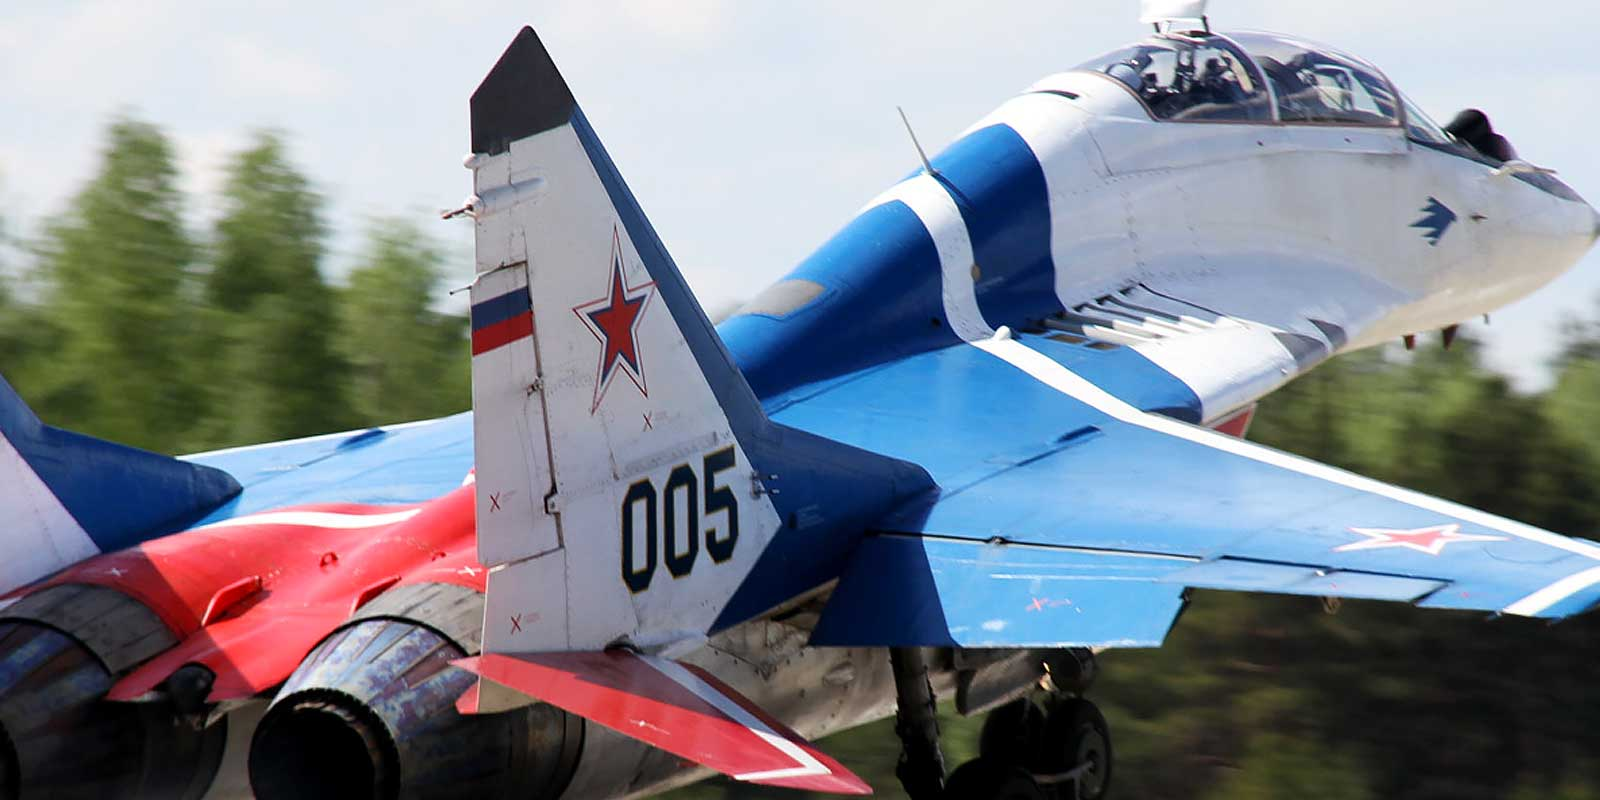 Fly a MiG-29 Fighter Jet